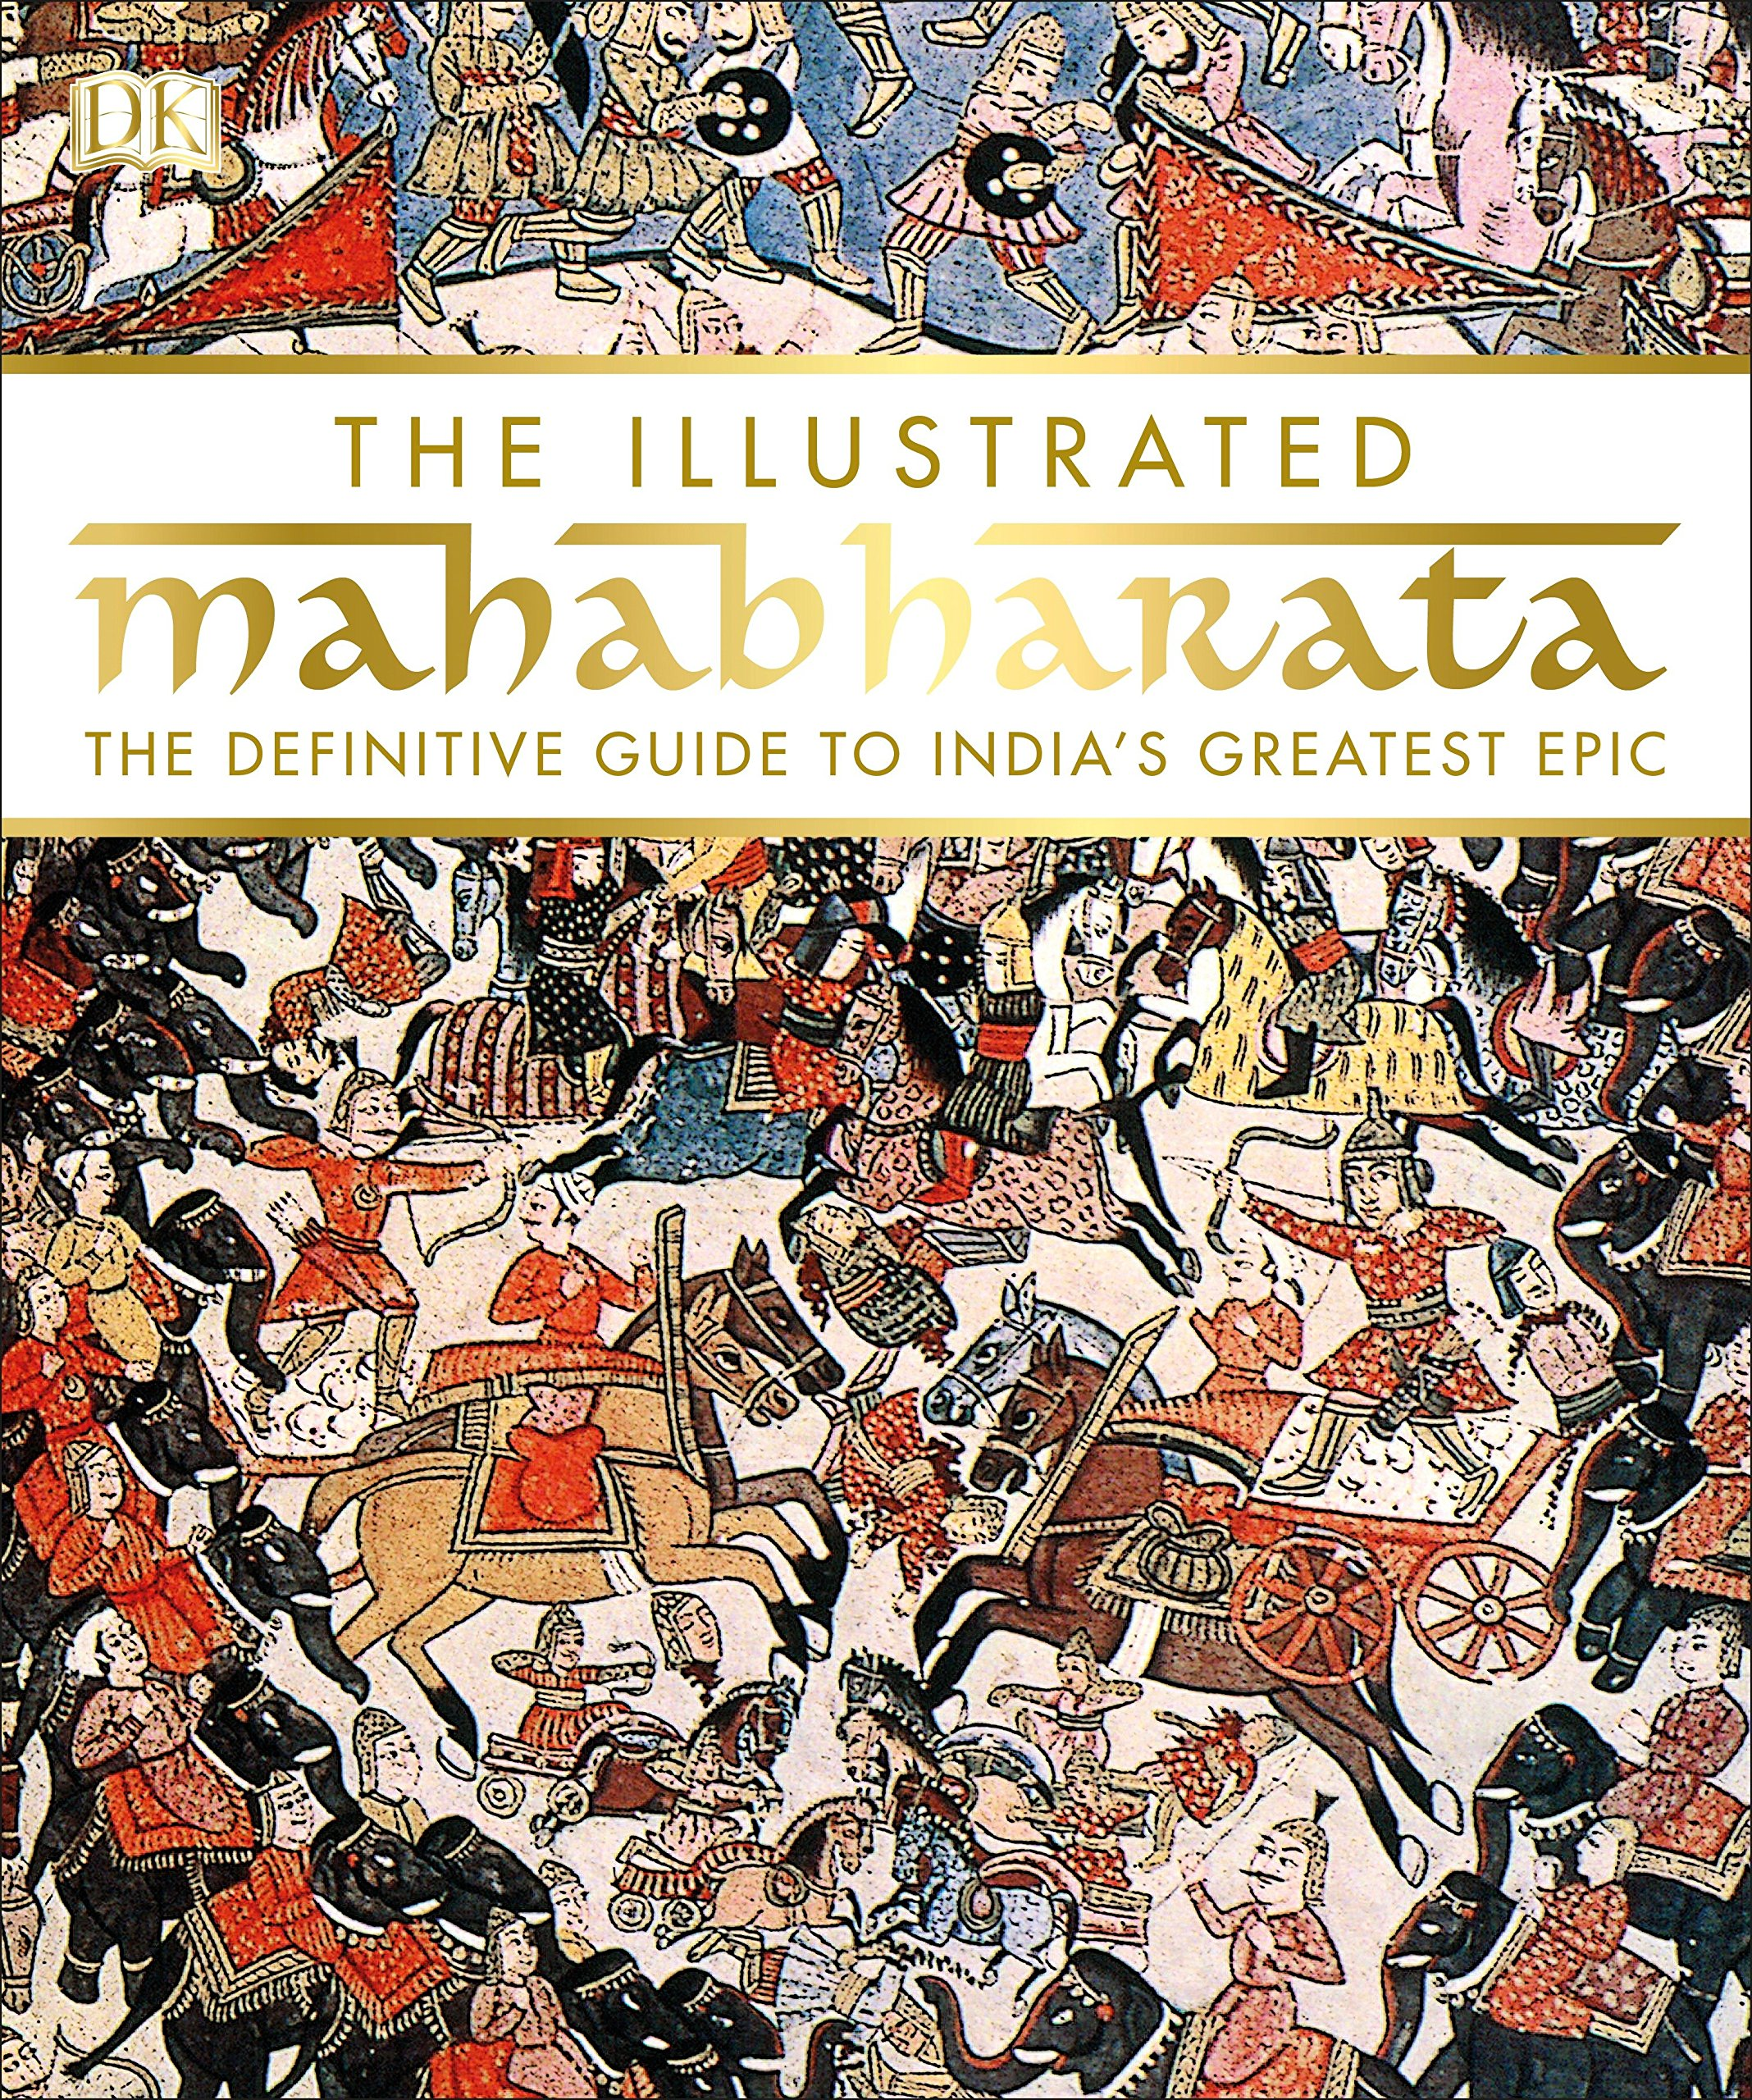 The Illustrated Mahabharata: The Definitive Guide to India s Greatest Epic